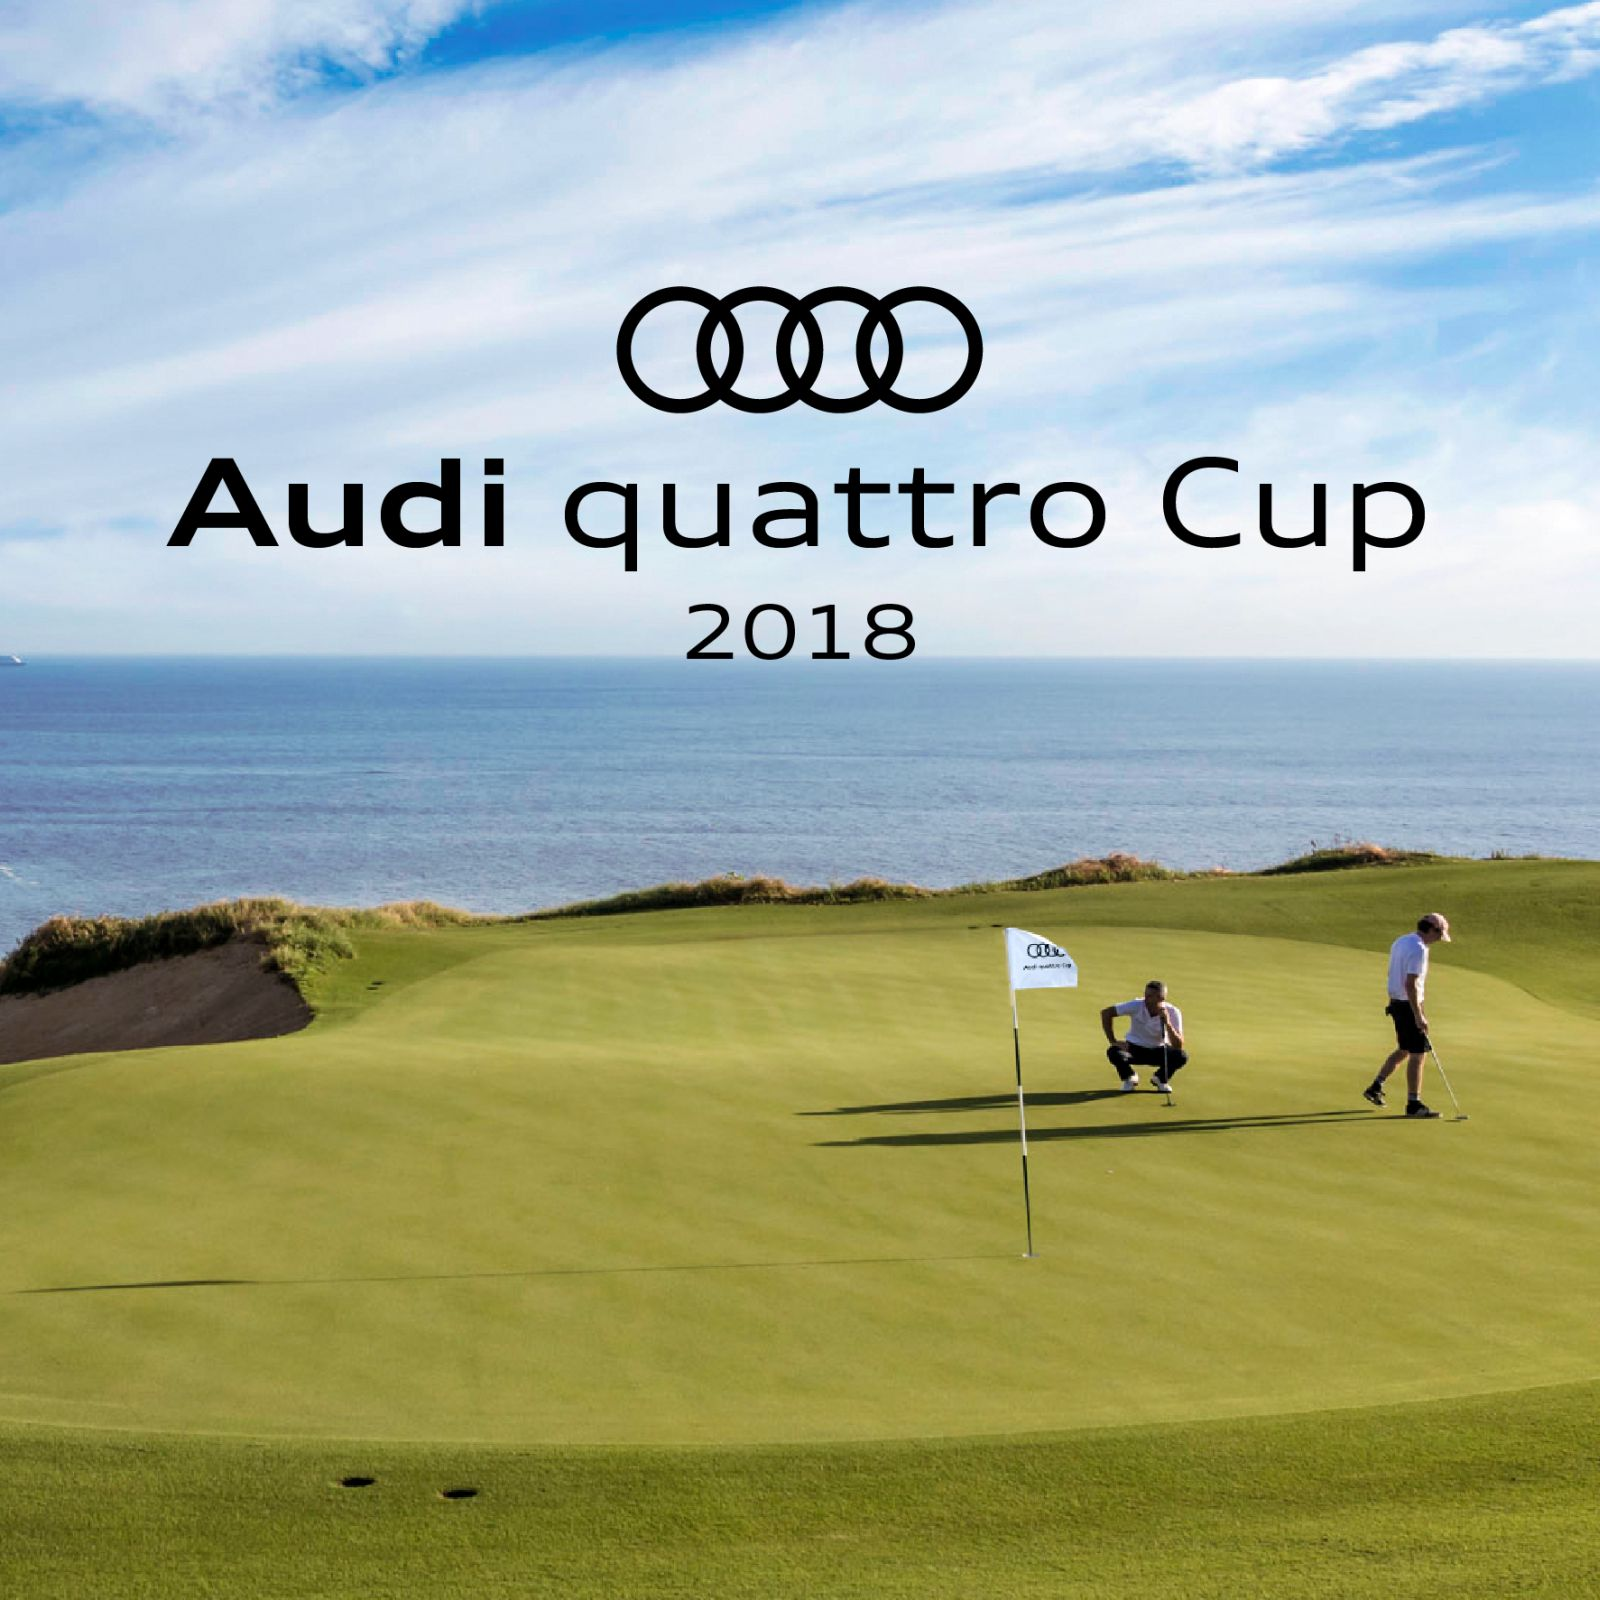 11th Edition Of Audi Quattro Cup Golf Tournament Series